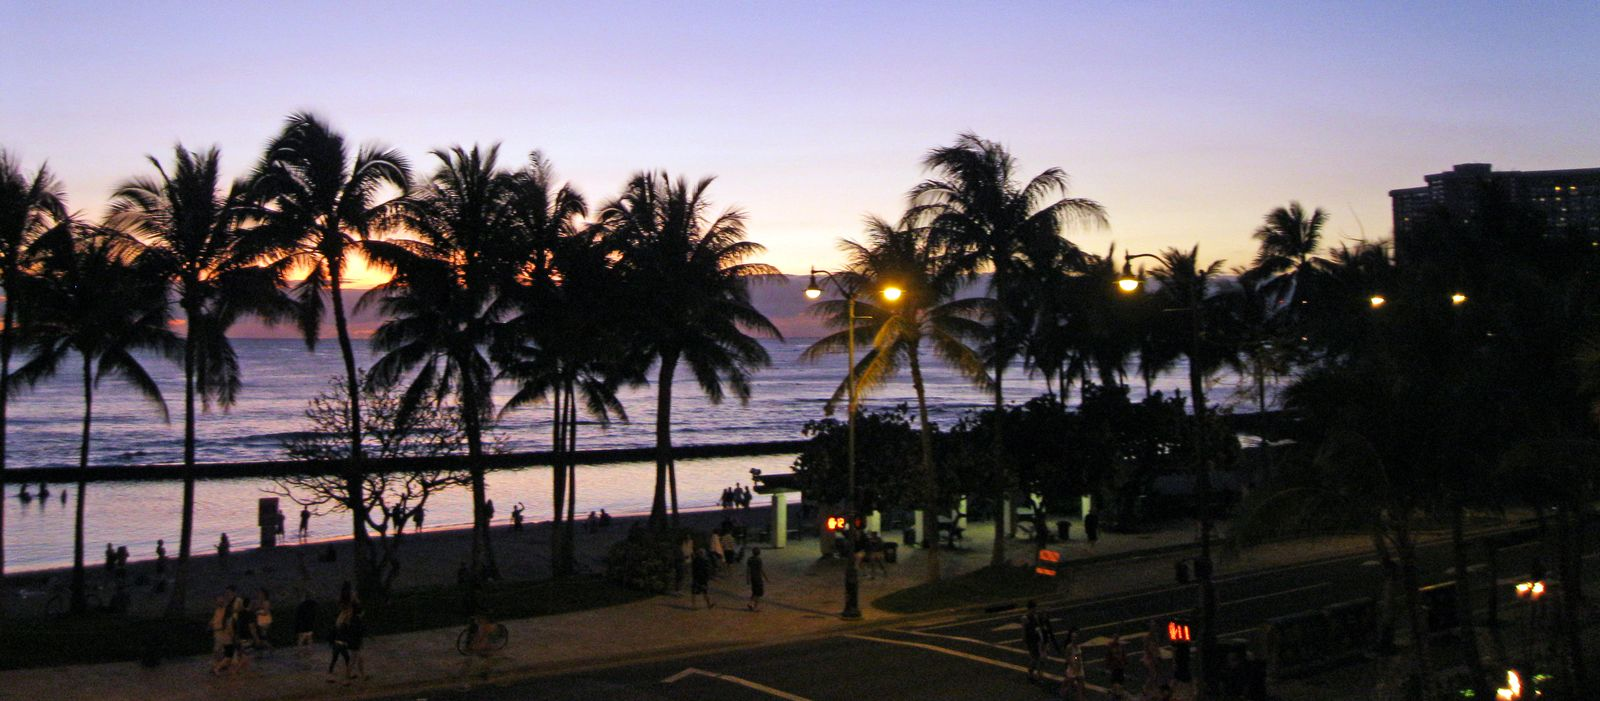 waikiki chat Discover the beauty, culture and adventures waiting for you on the hawaiian islands find hawaii travel information and plan your perfect vacation.